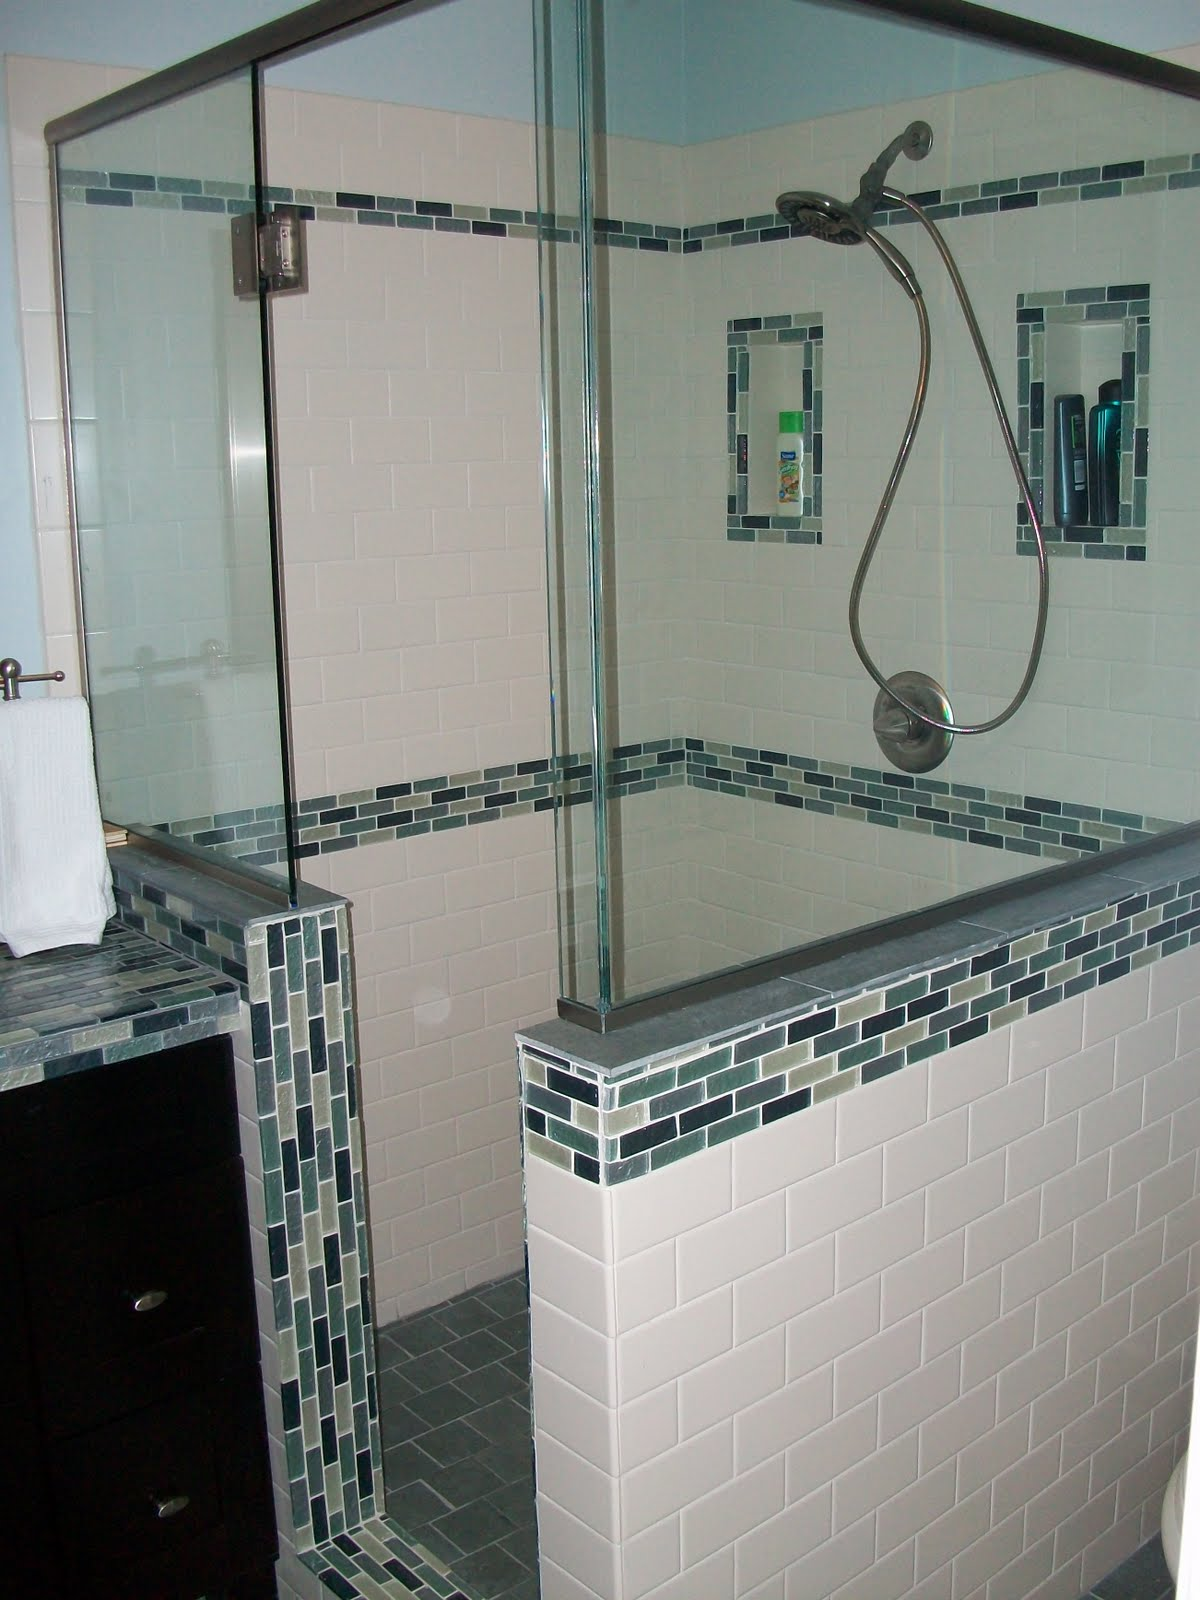 Southgate residential a small bathroom update for Small bathroom updates